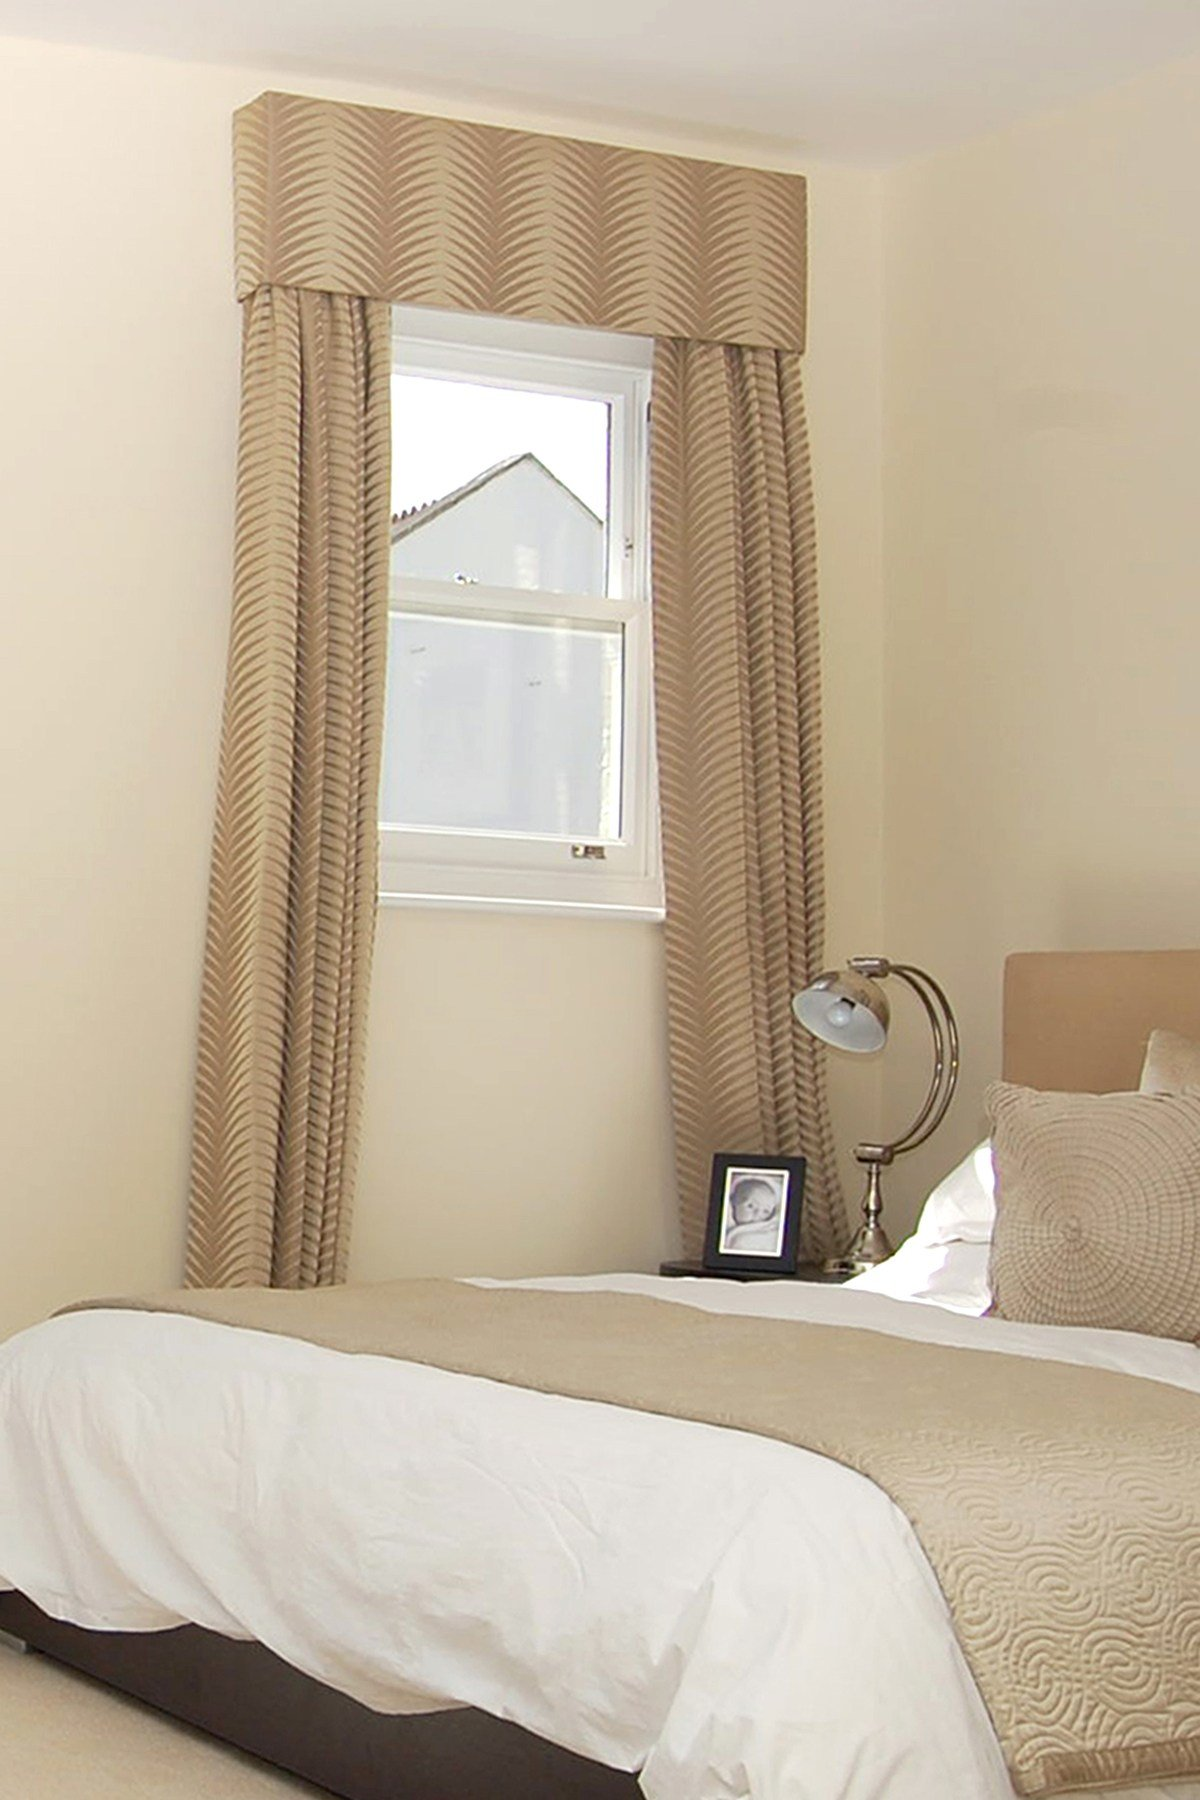 Best Decoration Curtains For Small Window In Bathroom With With Pictures